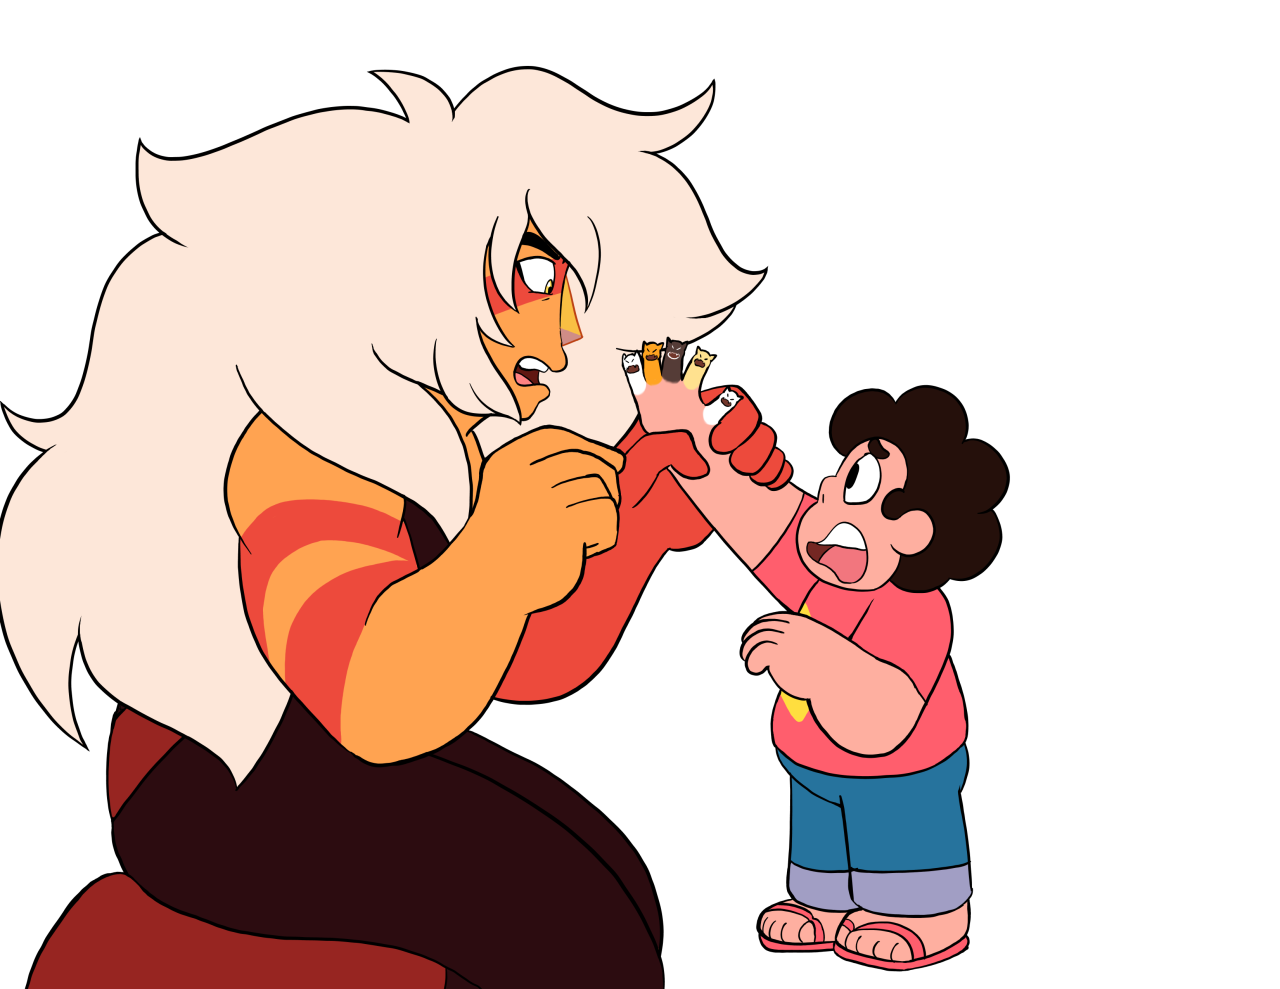 For @emma-swoon Steven: Lapis and Peridot were trying to teach me how to shapeshift but now I can't turn back! Jasper: Steven, why would you have the two gems that can't shapeshift try to teach you?